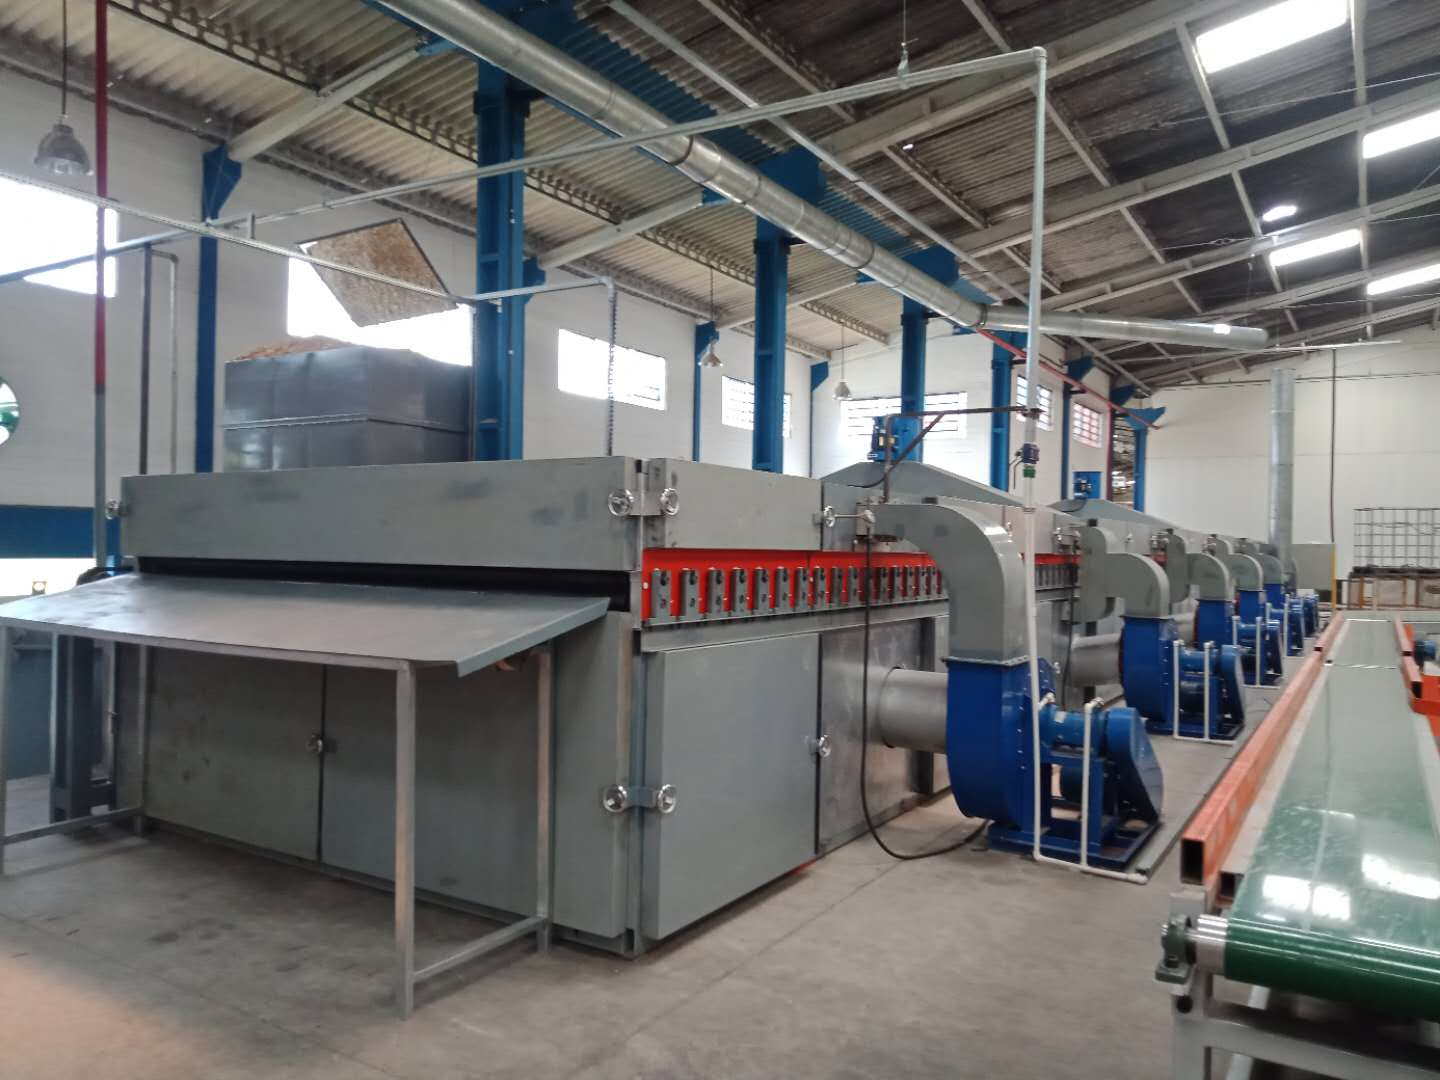 24m 1Deck Veneer Dryer